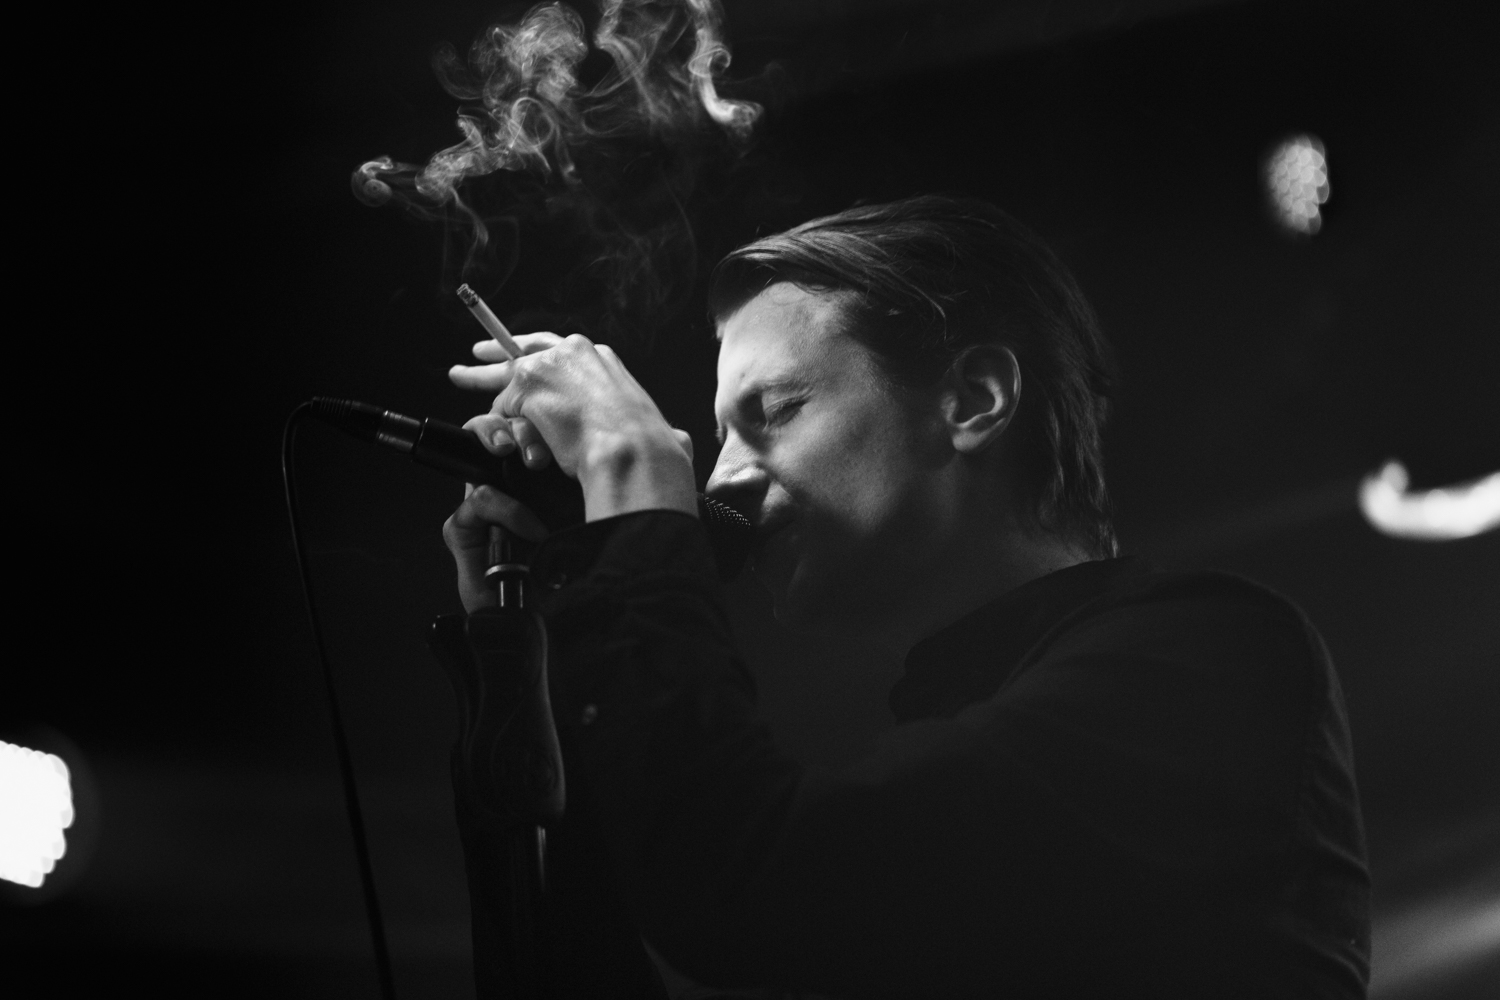 #sailorstrap_april #canon #canonpolska #wydzialremontowy #portrait #concert #koncert #vocalist #smoke #cigarets @exposurecollective